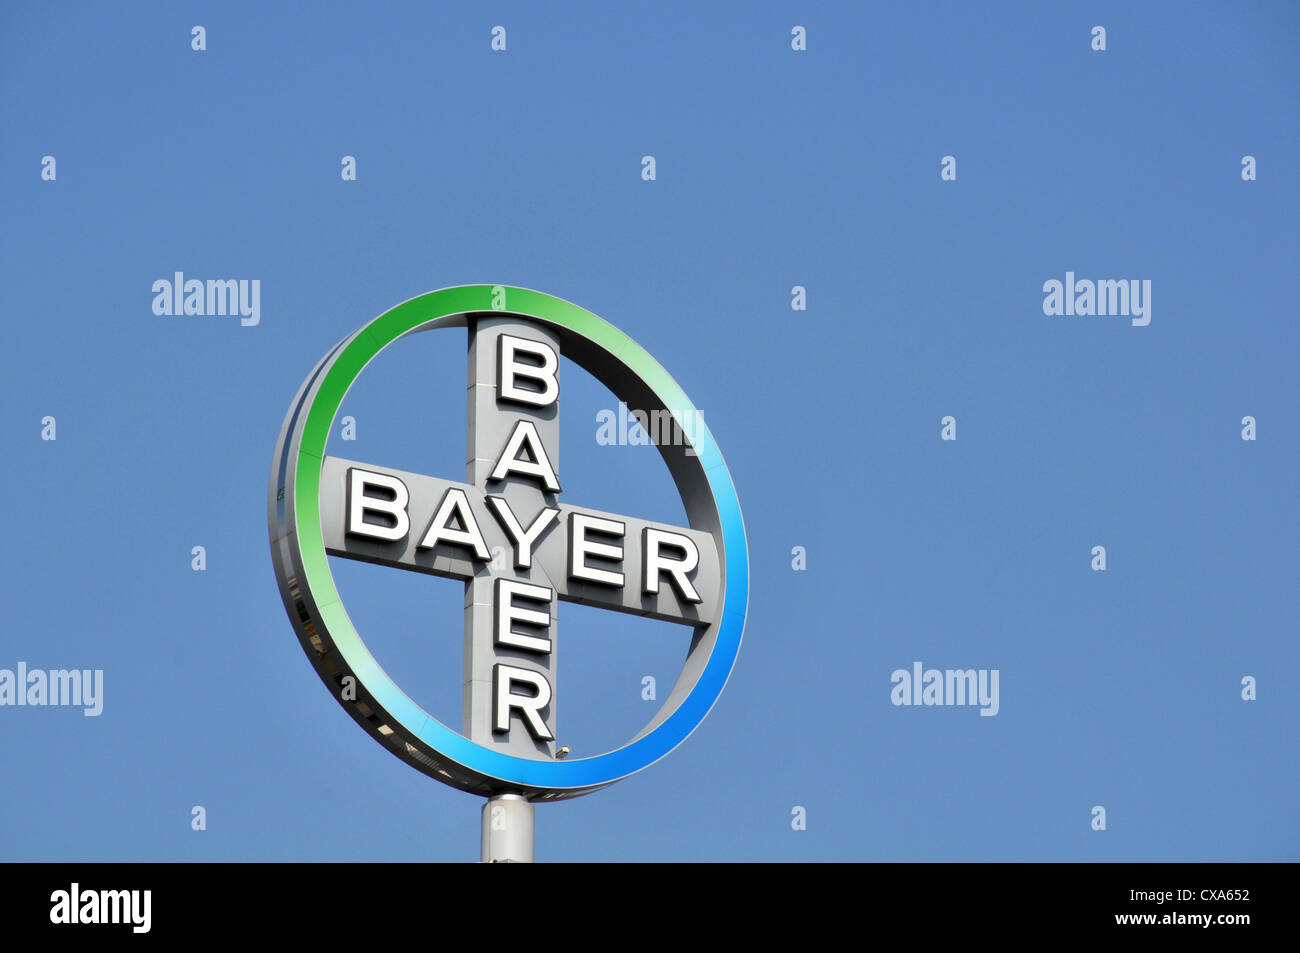 Bayer cross logo on top of a tower Berlin Germany - Stock Image